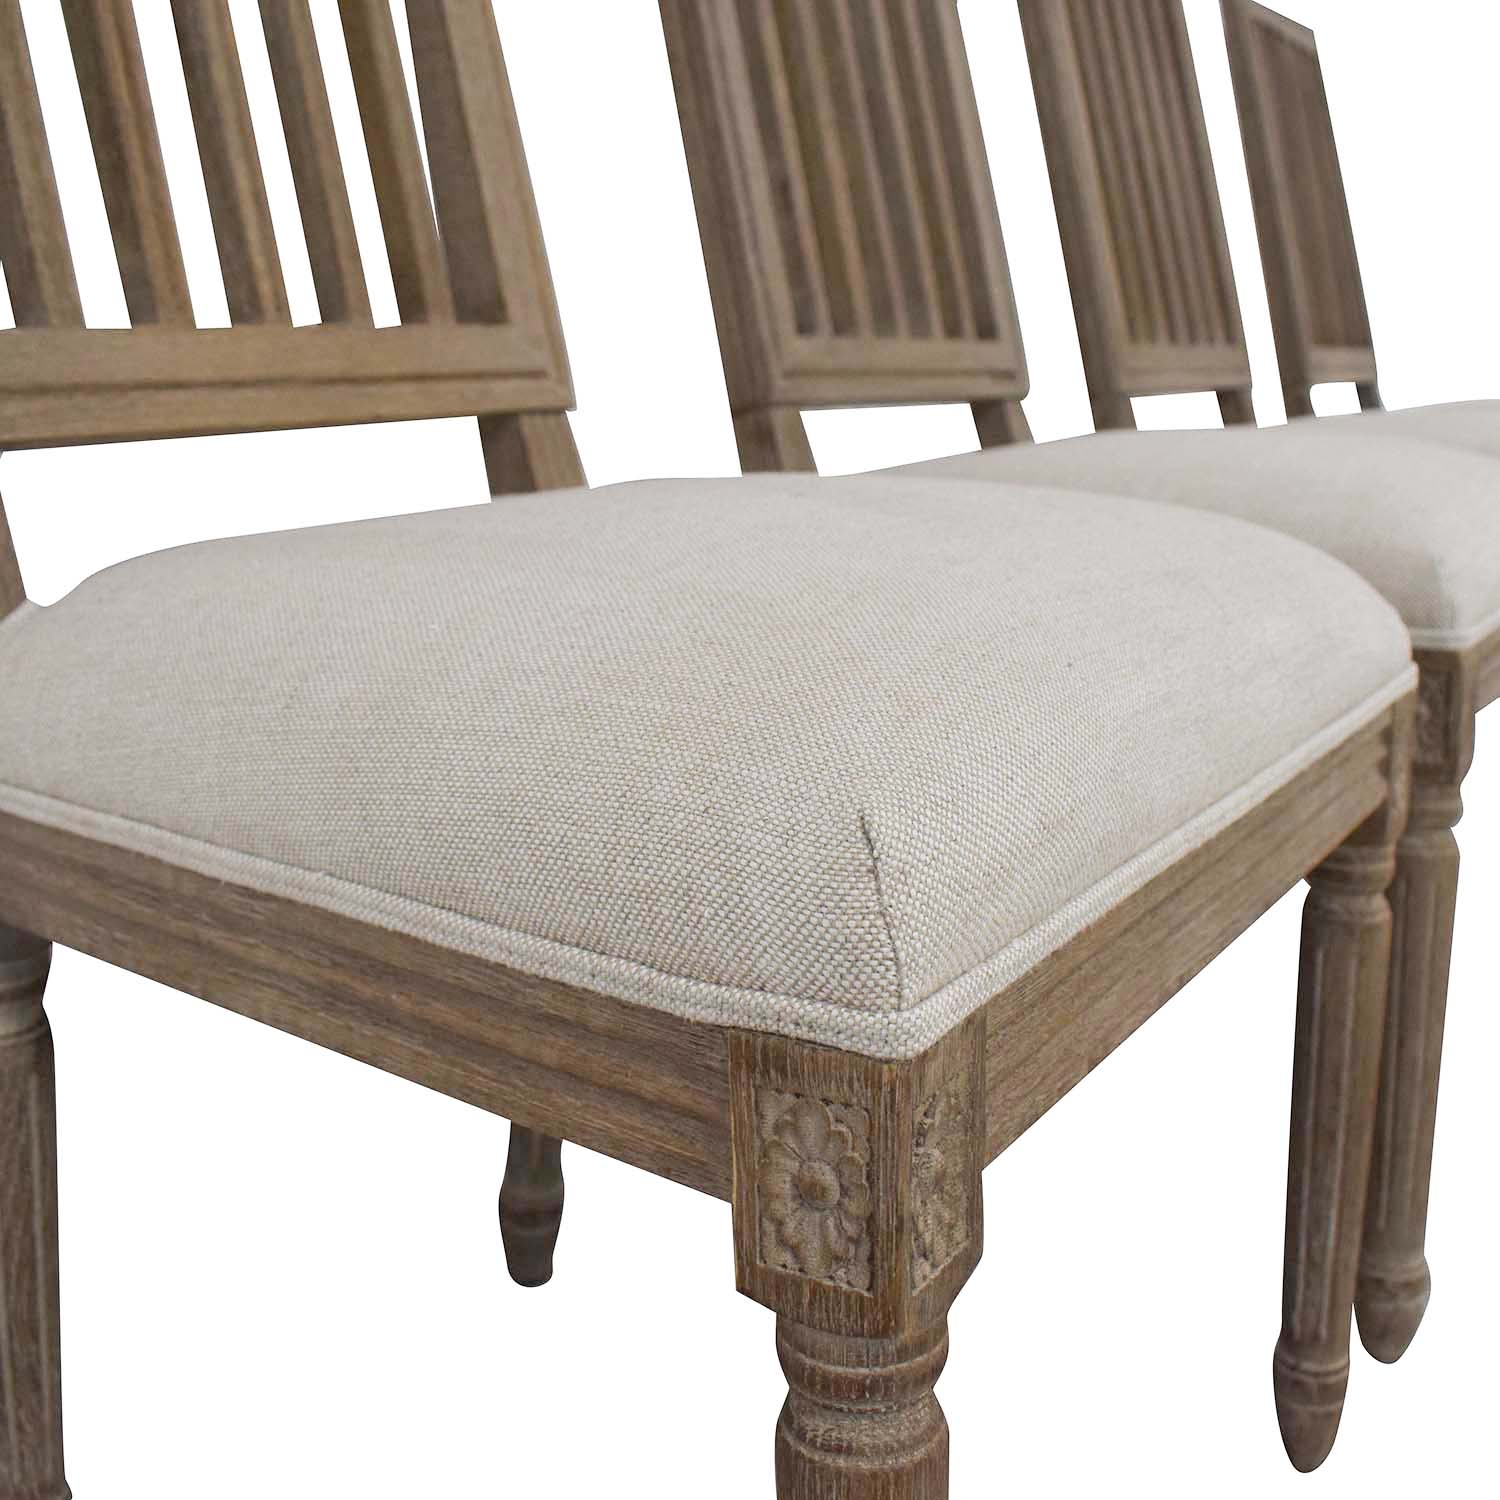 Restoration Hardware Restoration Hardware Spindle Back Dining Chairs Dining Chairs